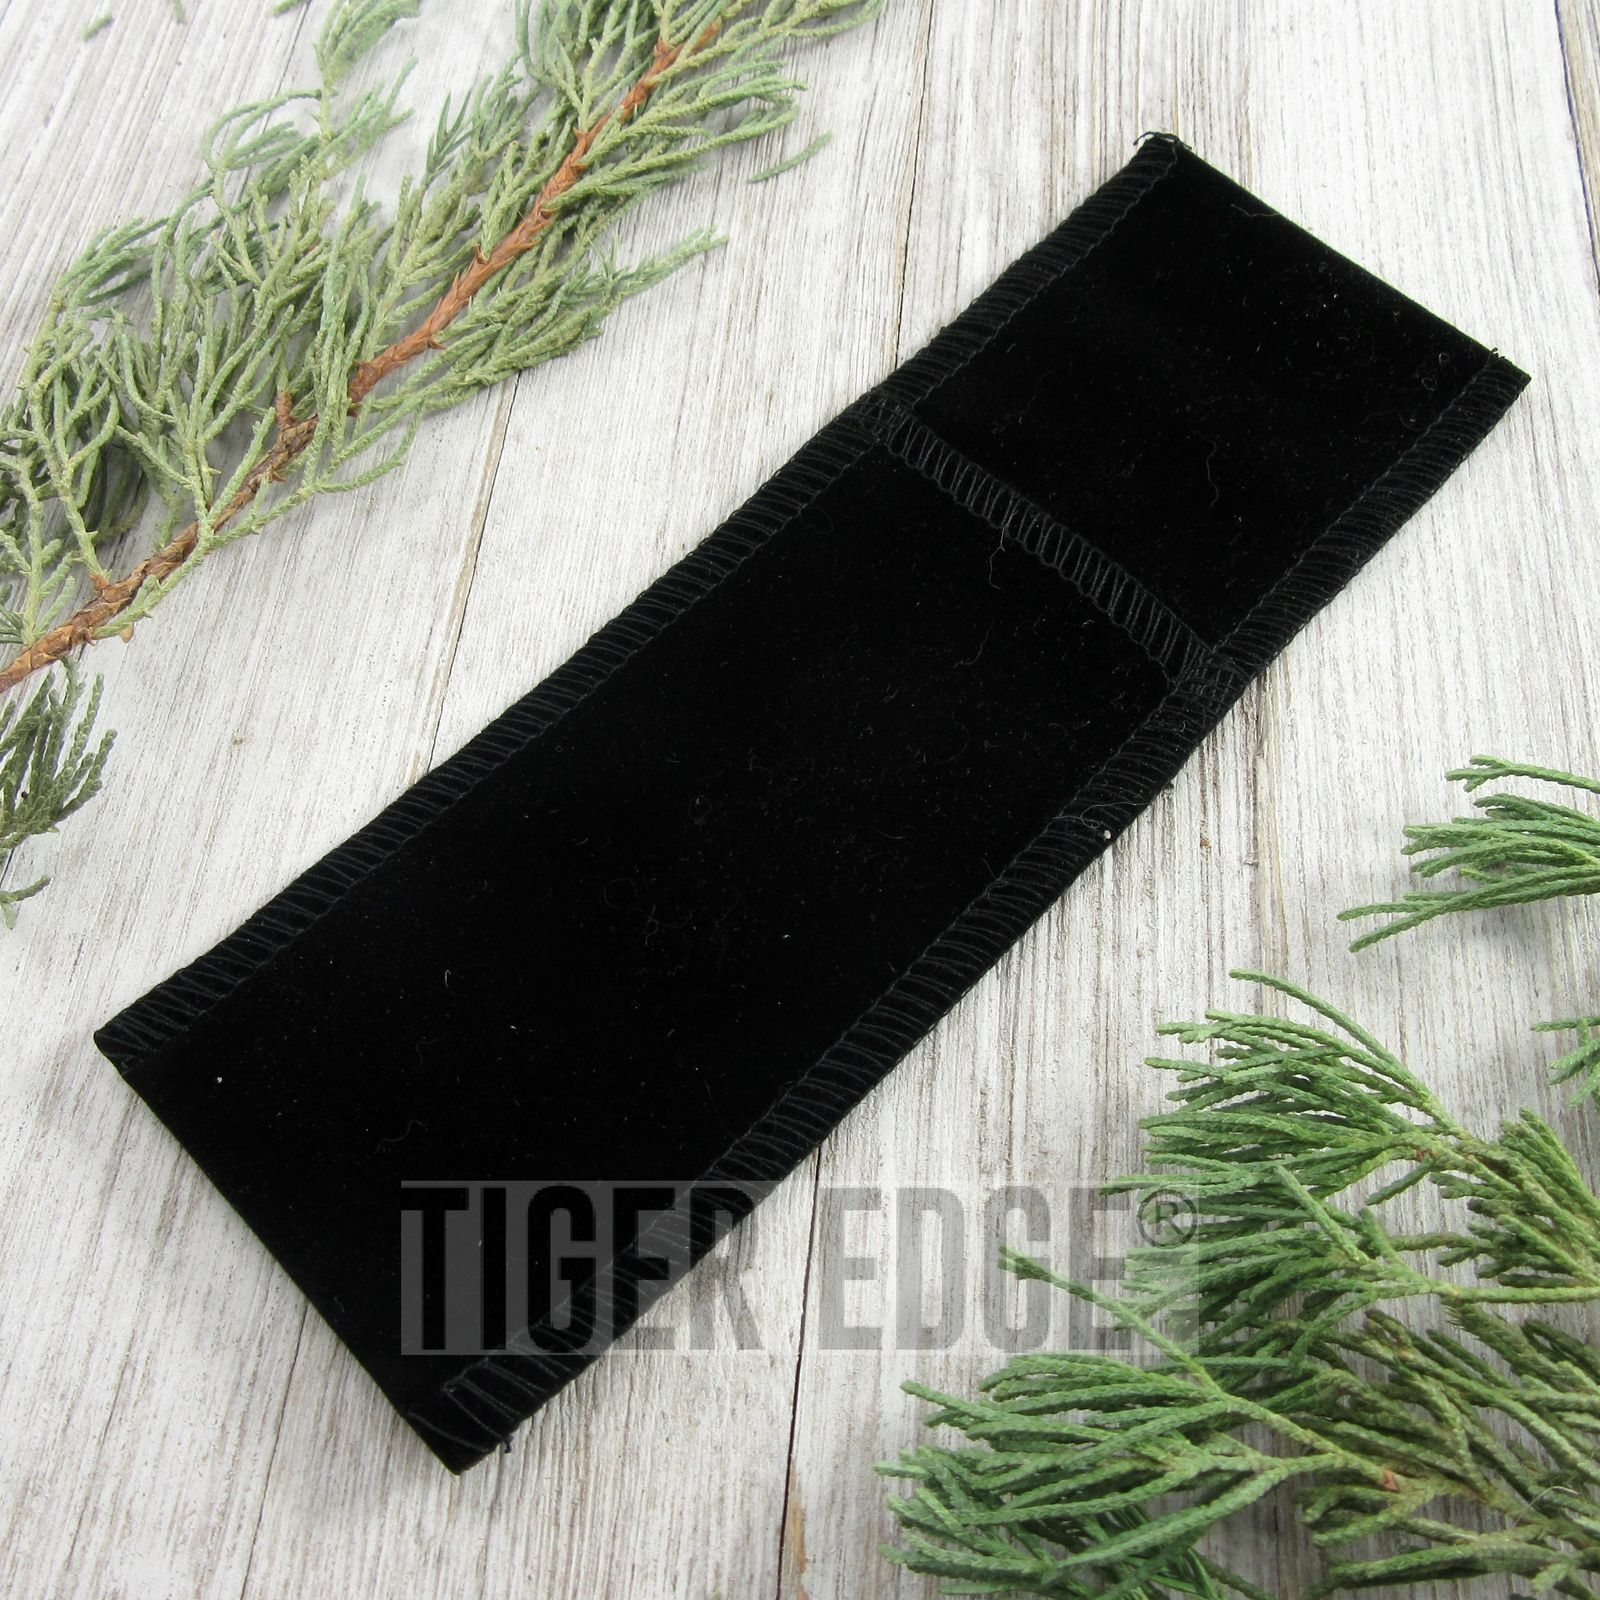 Folding Knife Sheath | Black Velvet Slip Case Pouch For Folders Up To 5""